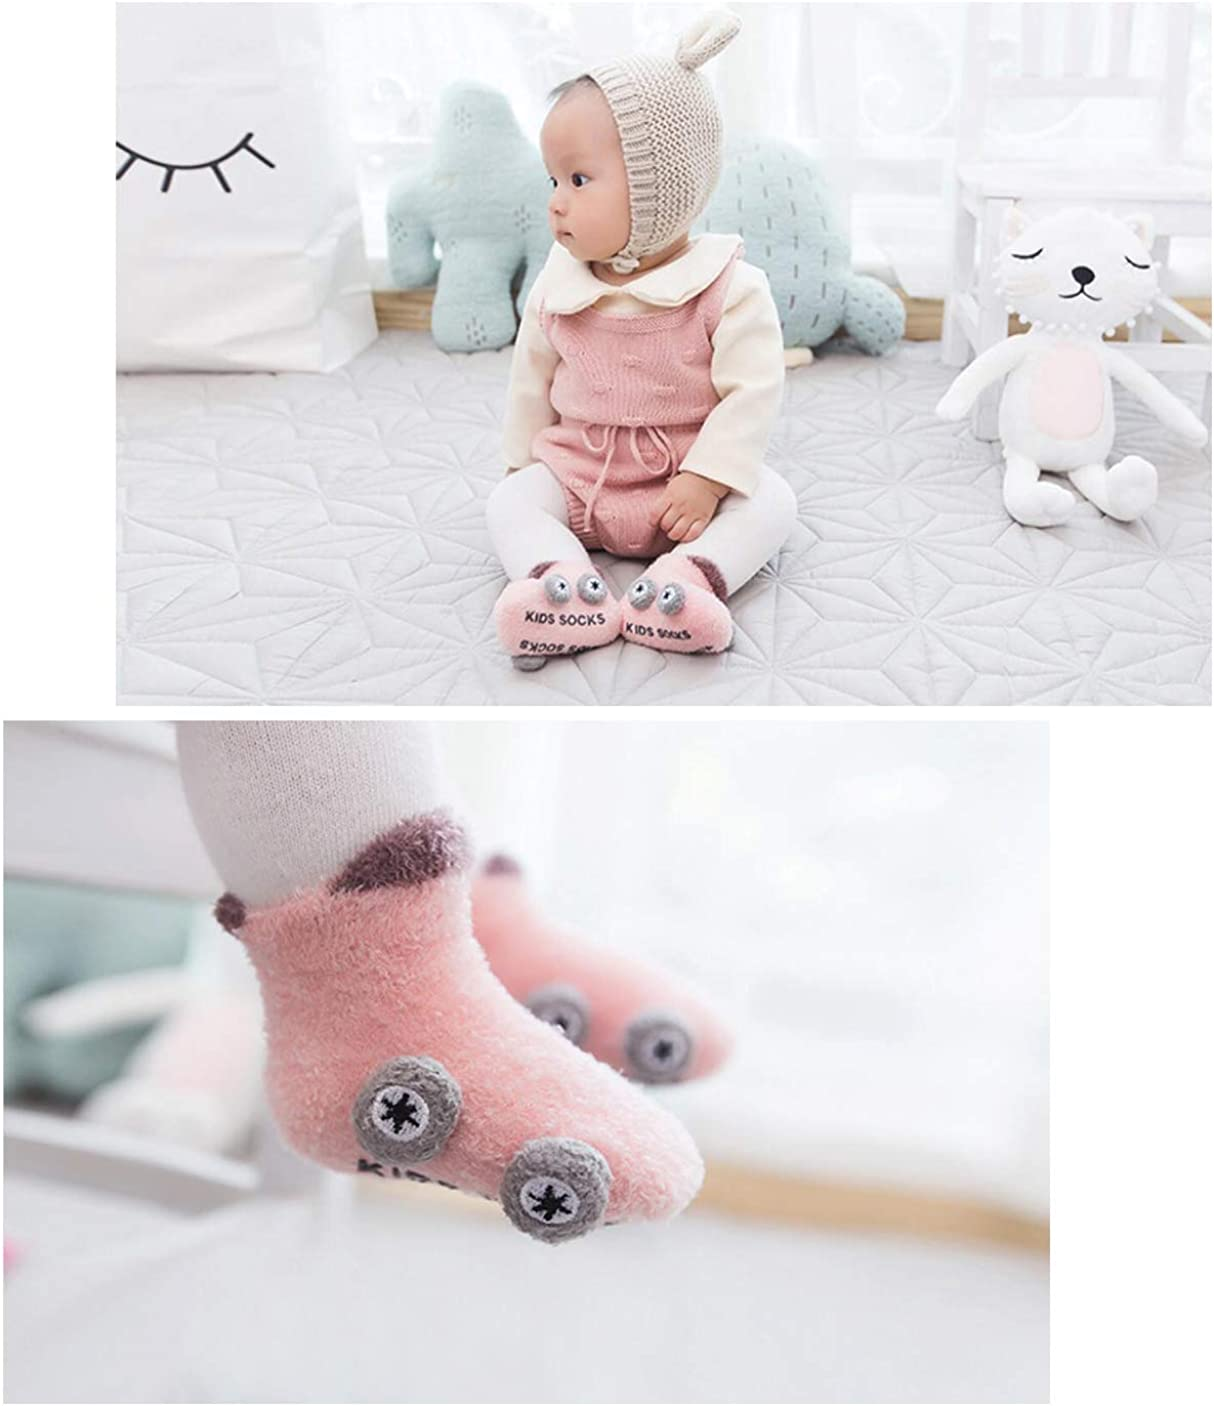 0-3 Years Gift for Infant Toddler Baby 2 Pairs Baby Thick Cotton Socks Soft Elastic Warm Cute Colorful Breathable Anti-Slip Socks Set for Baby Girl Boy